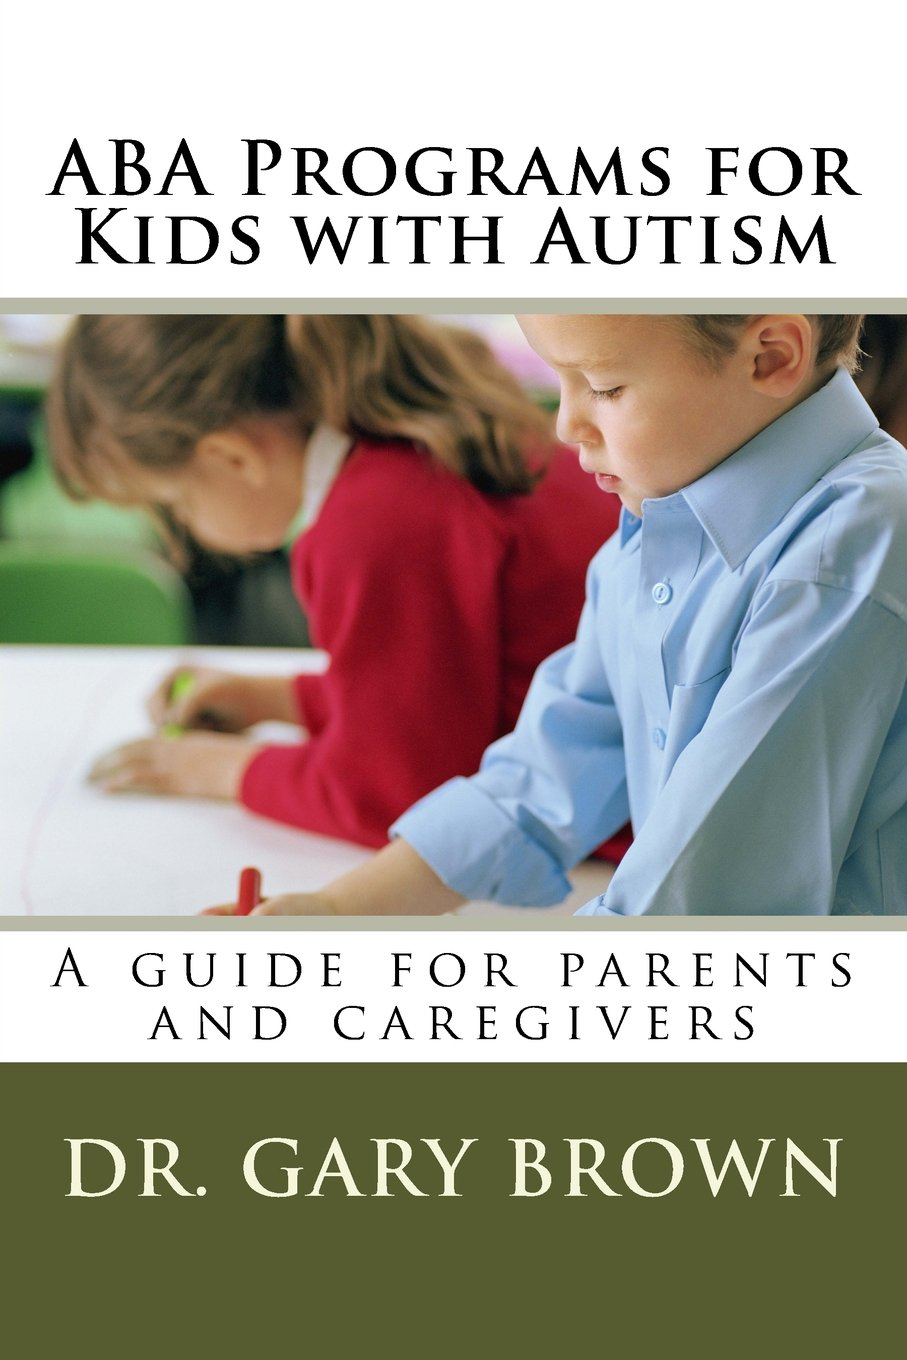 ABA Programs for Kids with Autism: A guide for parents and caregivers - Autism Related Apps